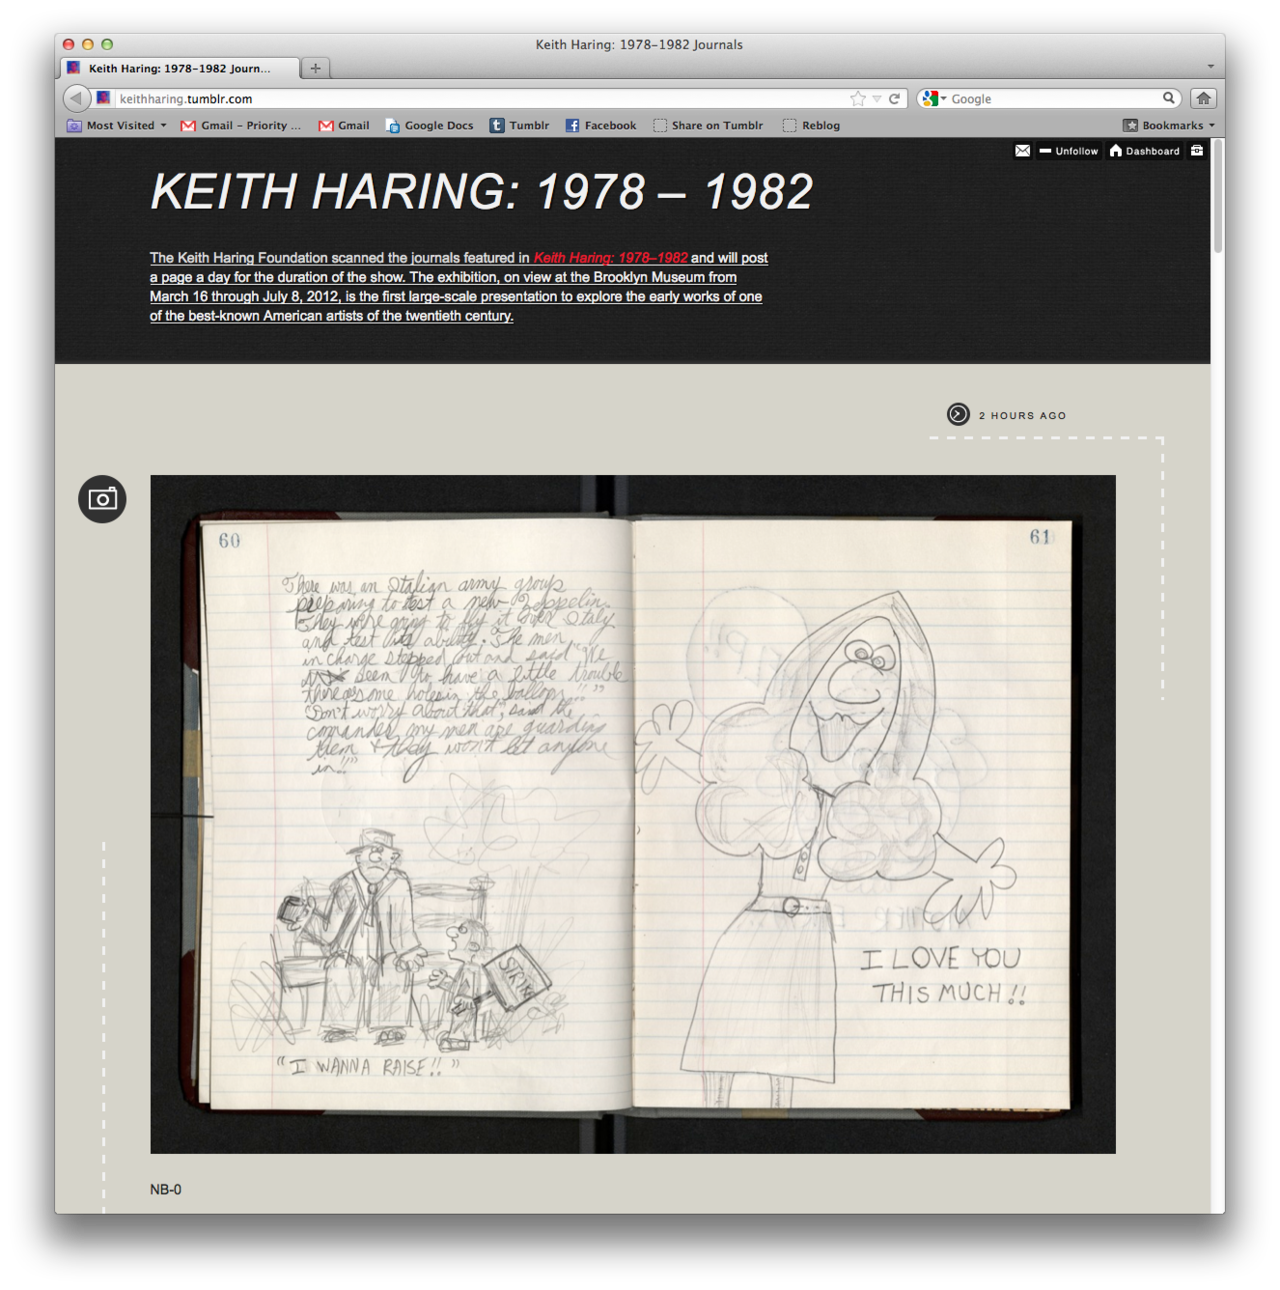 The Brooklyn Museum posts a page from Keith Haring's journals every day for the duration of their exhibit on the iconic artist and posted images of the archival process as well for a behind the scenes aspect. Inside the physical exhibit, the museum displayed the Tumblr on an iPad for visitors to scroll through as they strolled through the space.